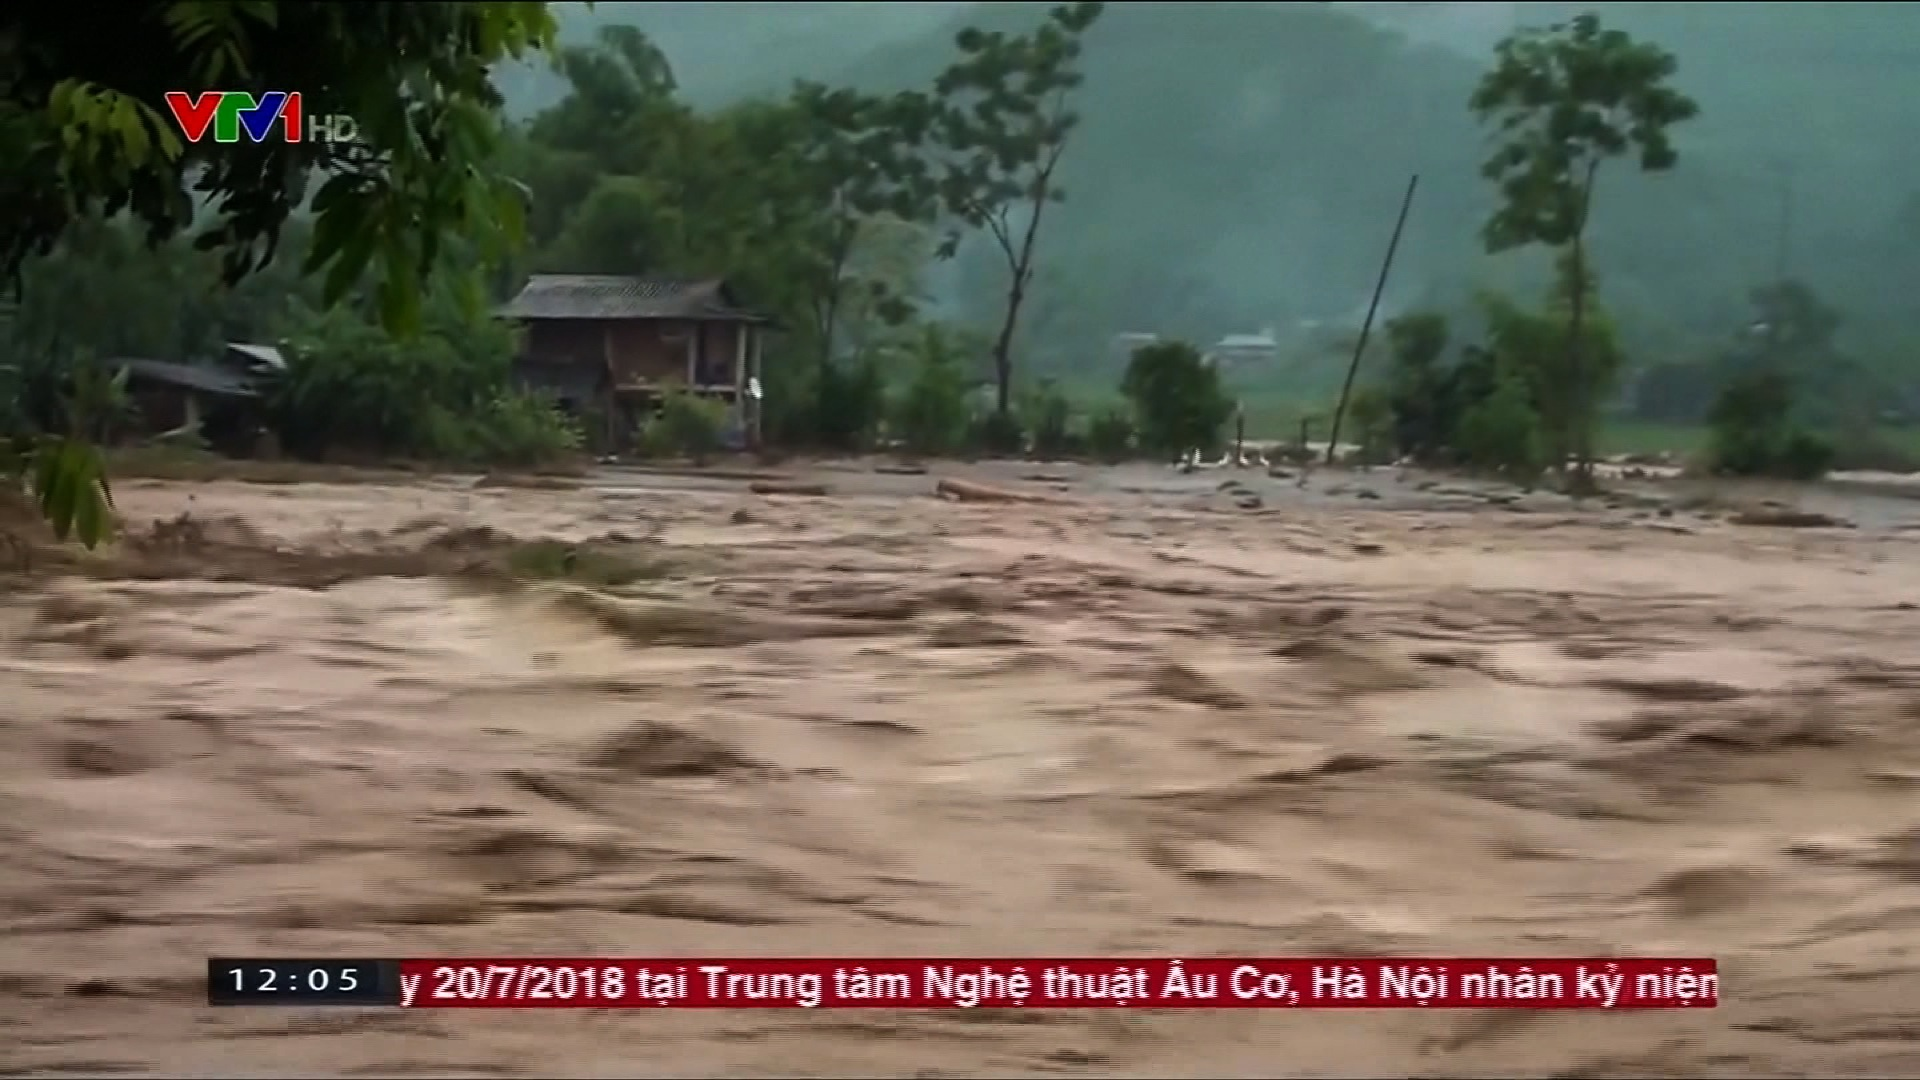 Over 20 killed by flooding in Vietnam - CNN Video